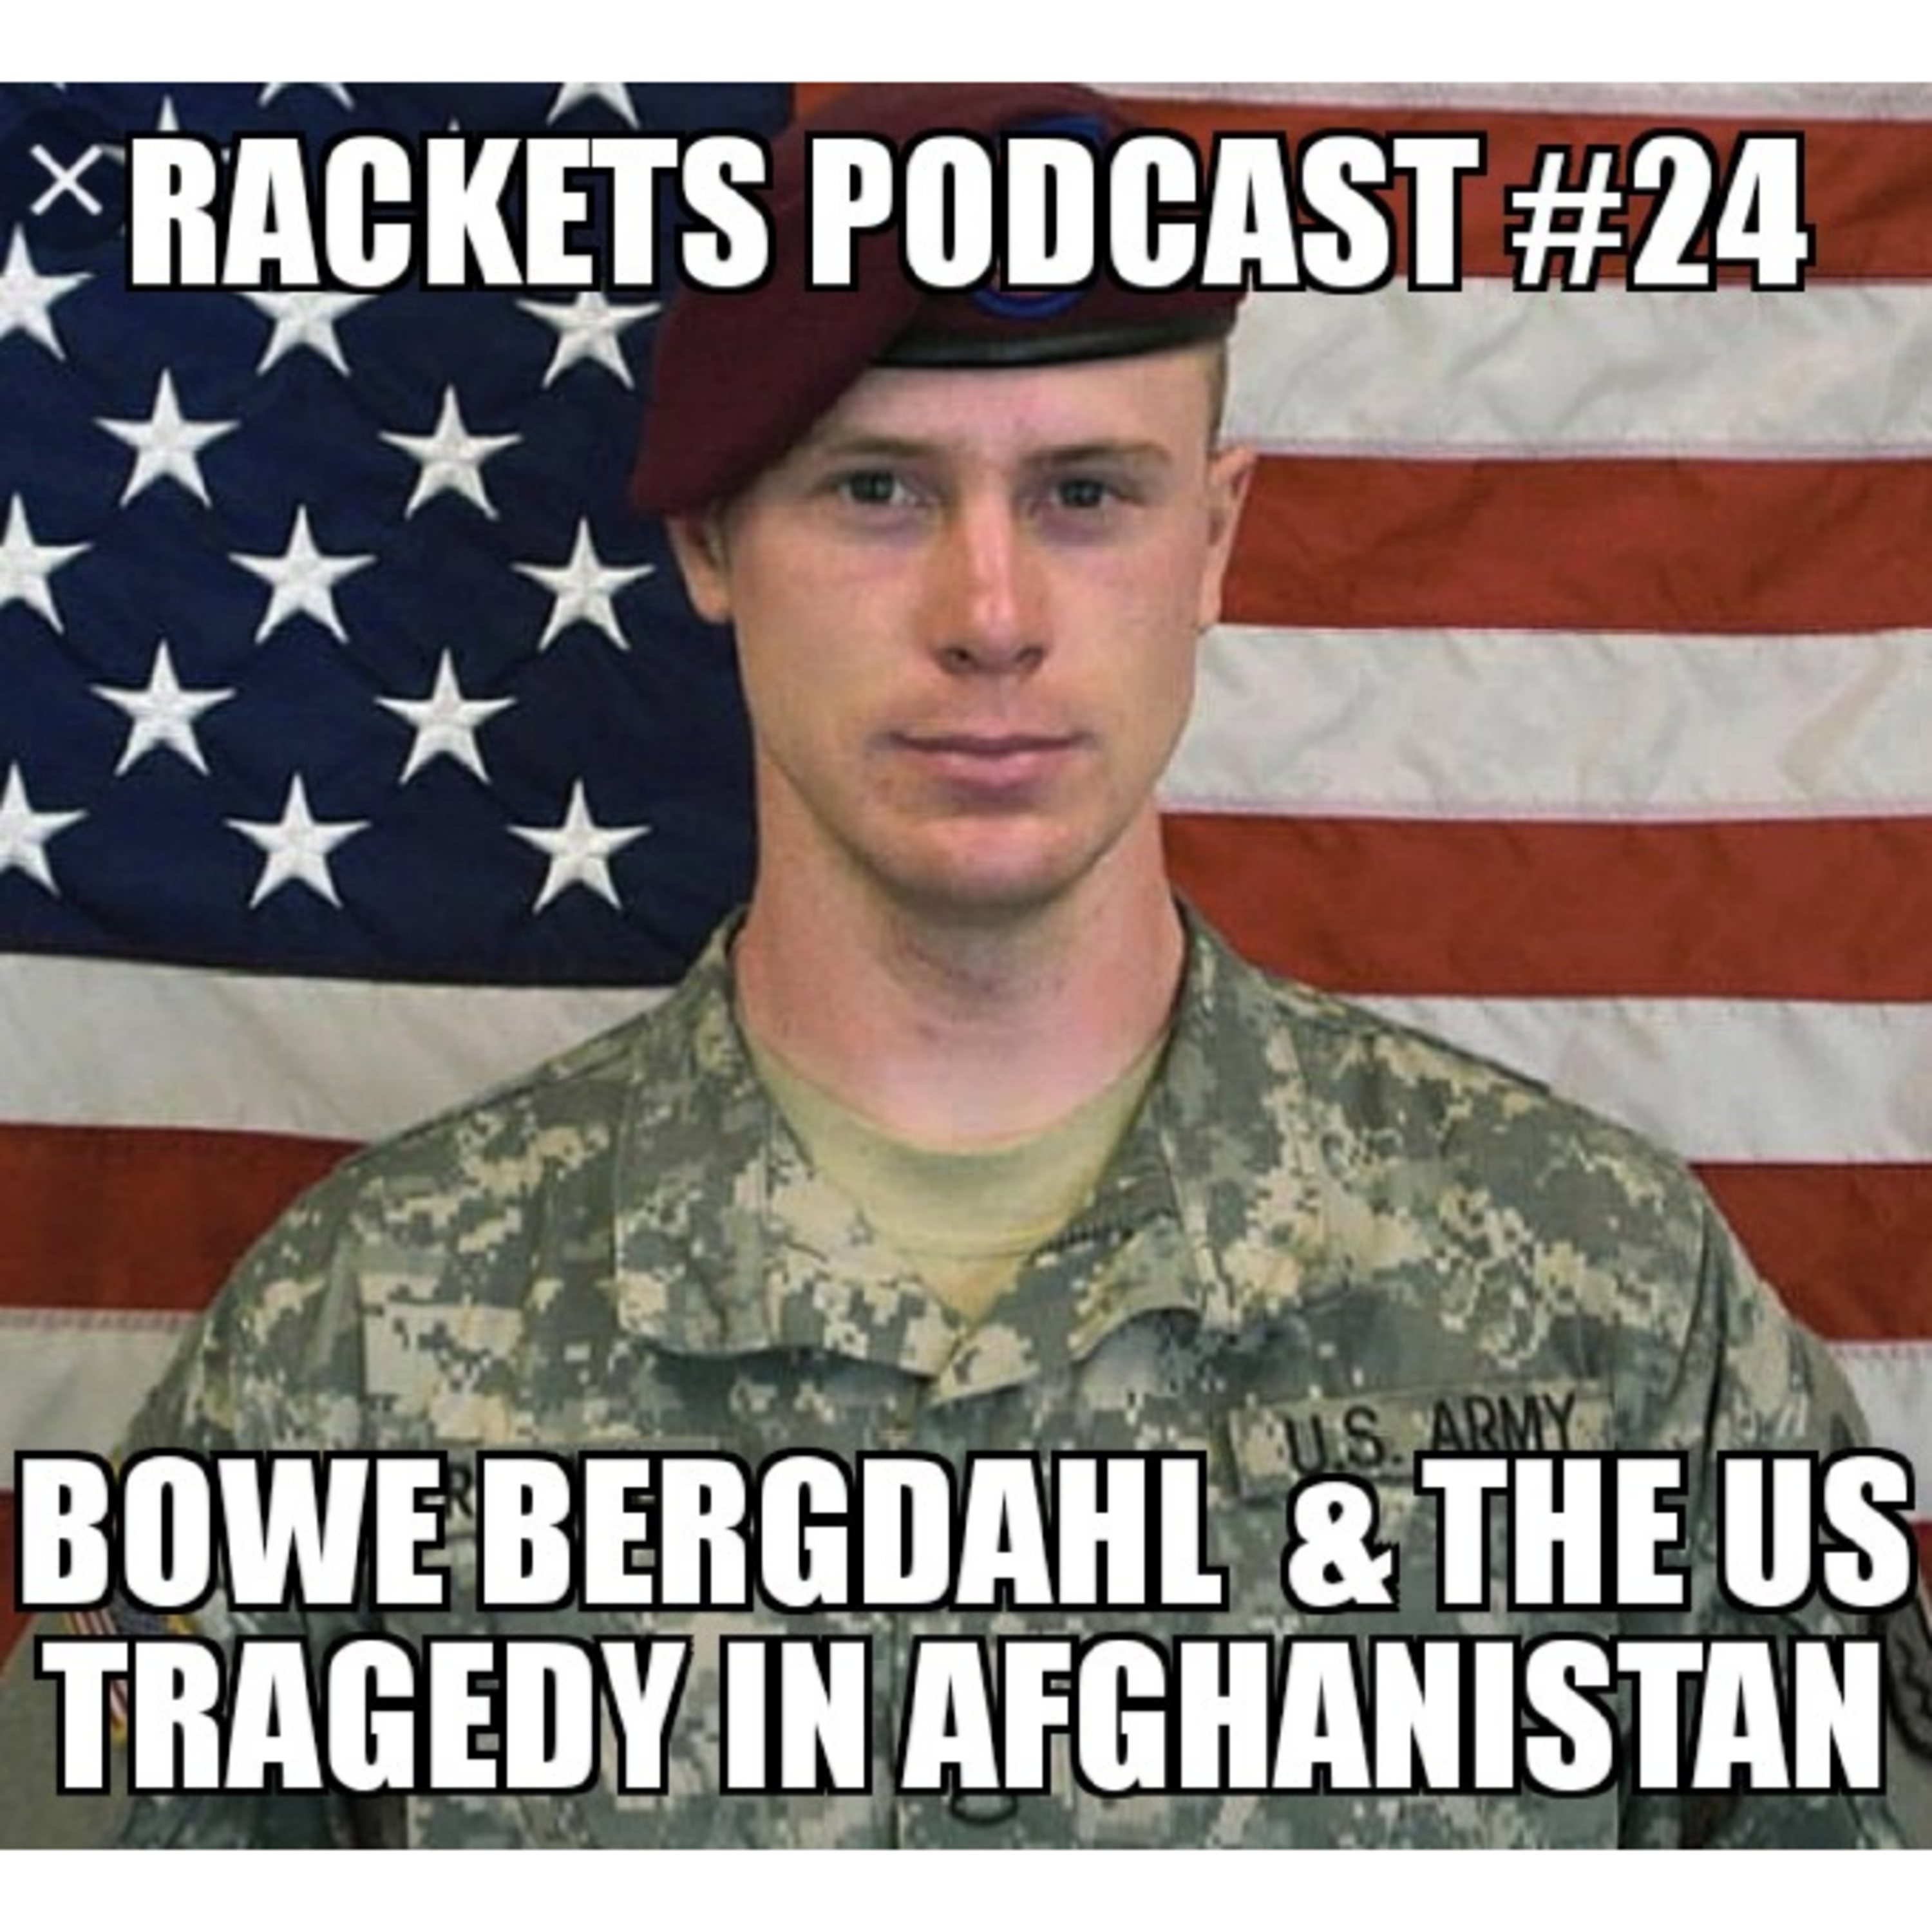 Bowe Bergdahl & the U.S. Tragedy in Afghanistan